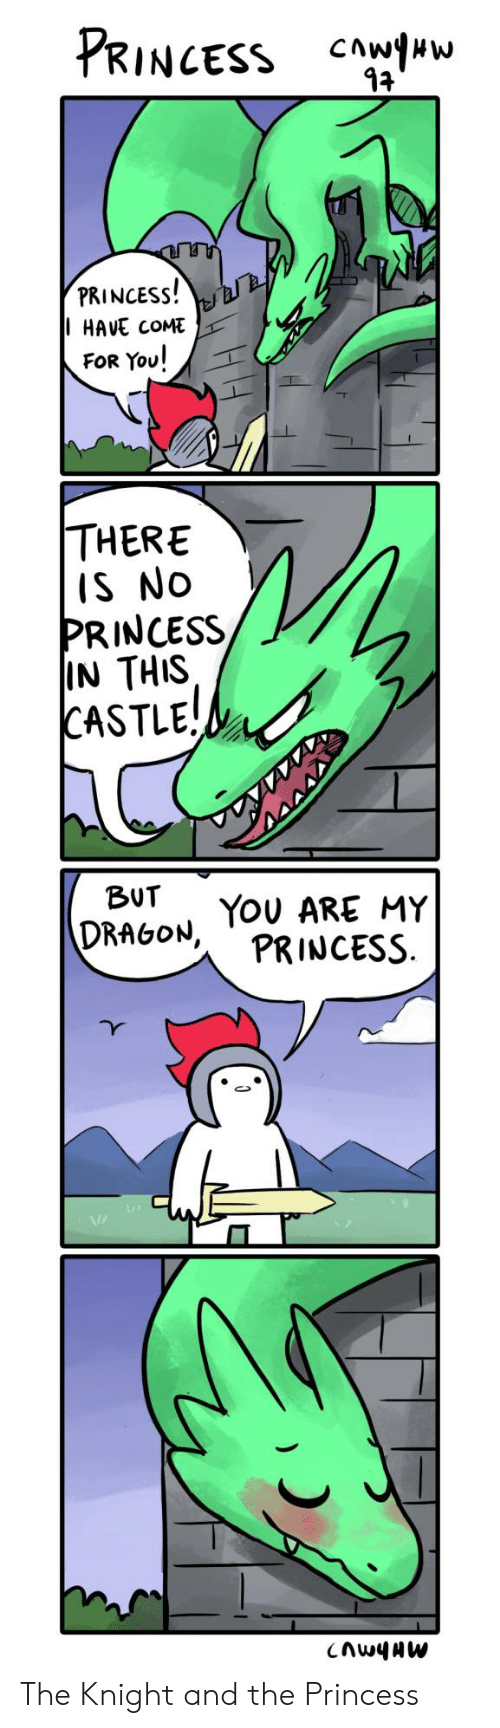 you there: PRINCESS  PRINCESS!  HAVE COME  FOR You!  THERE  IS NO  PRINCESS  IN THIS  CASTLE!  BUT  DRAGON, TOU ARE MY  PRINCESS  CnwyAW The Knight and the Princess